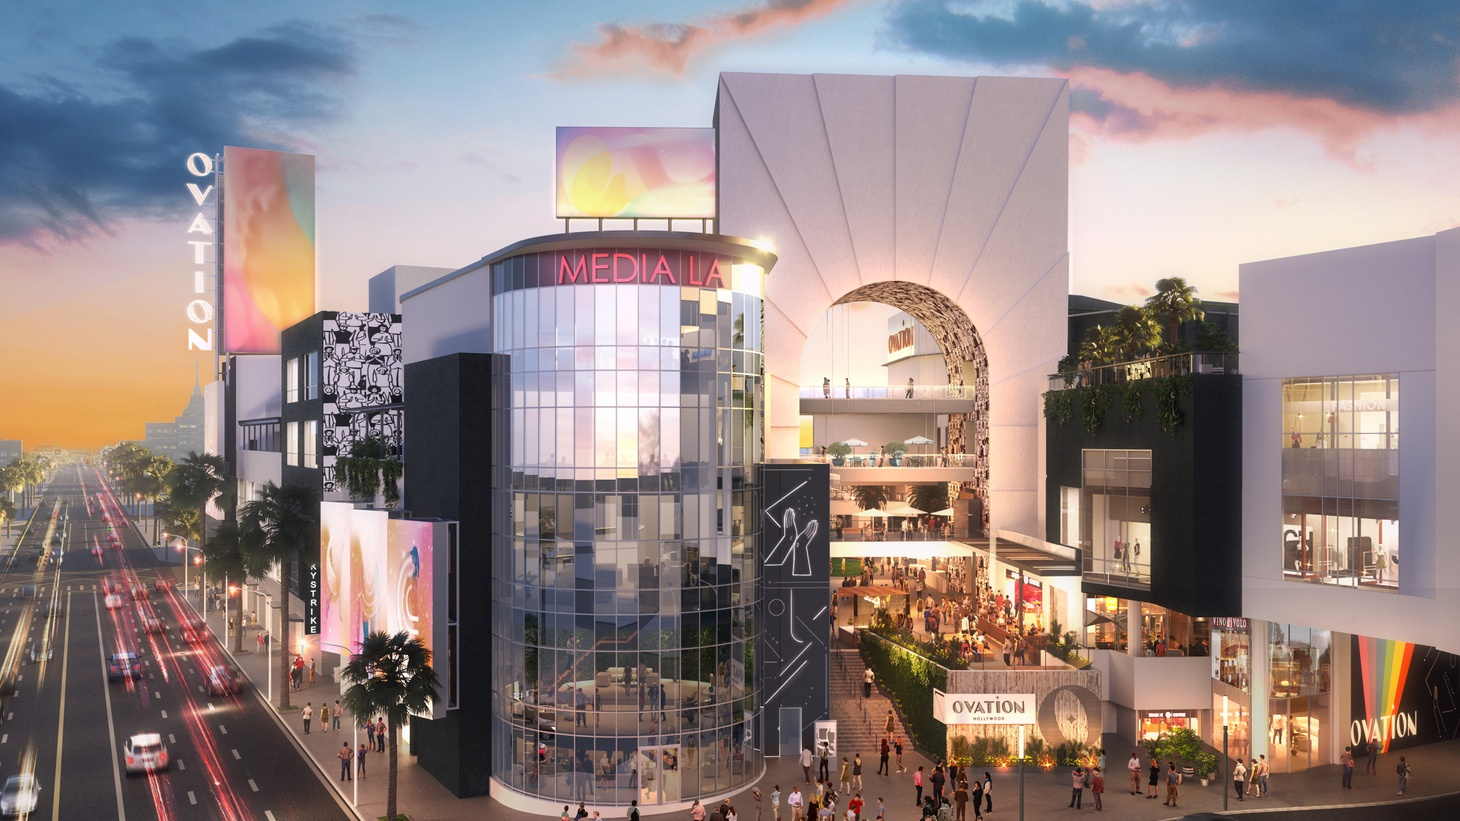 A rendering of the redesigned Hollywood and Highland retail and entertainment center, which will be called Ovation.